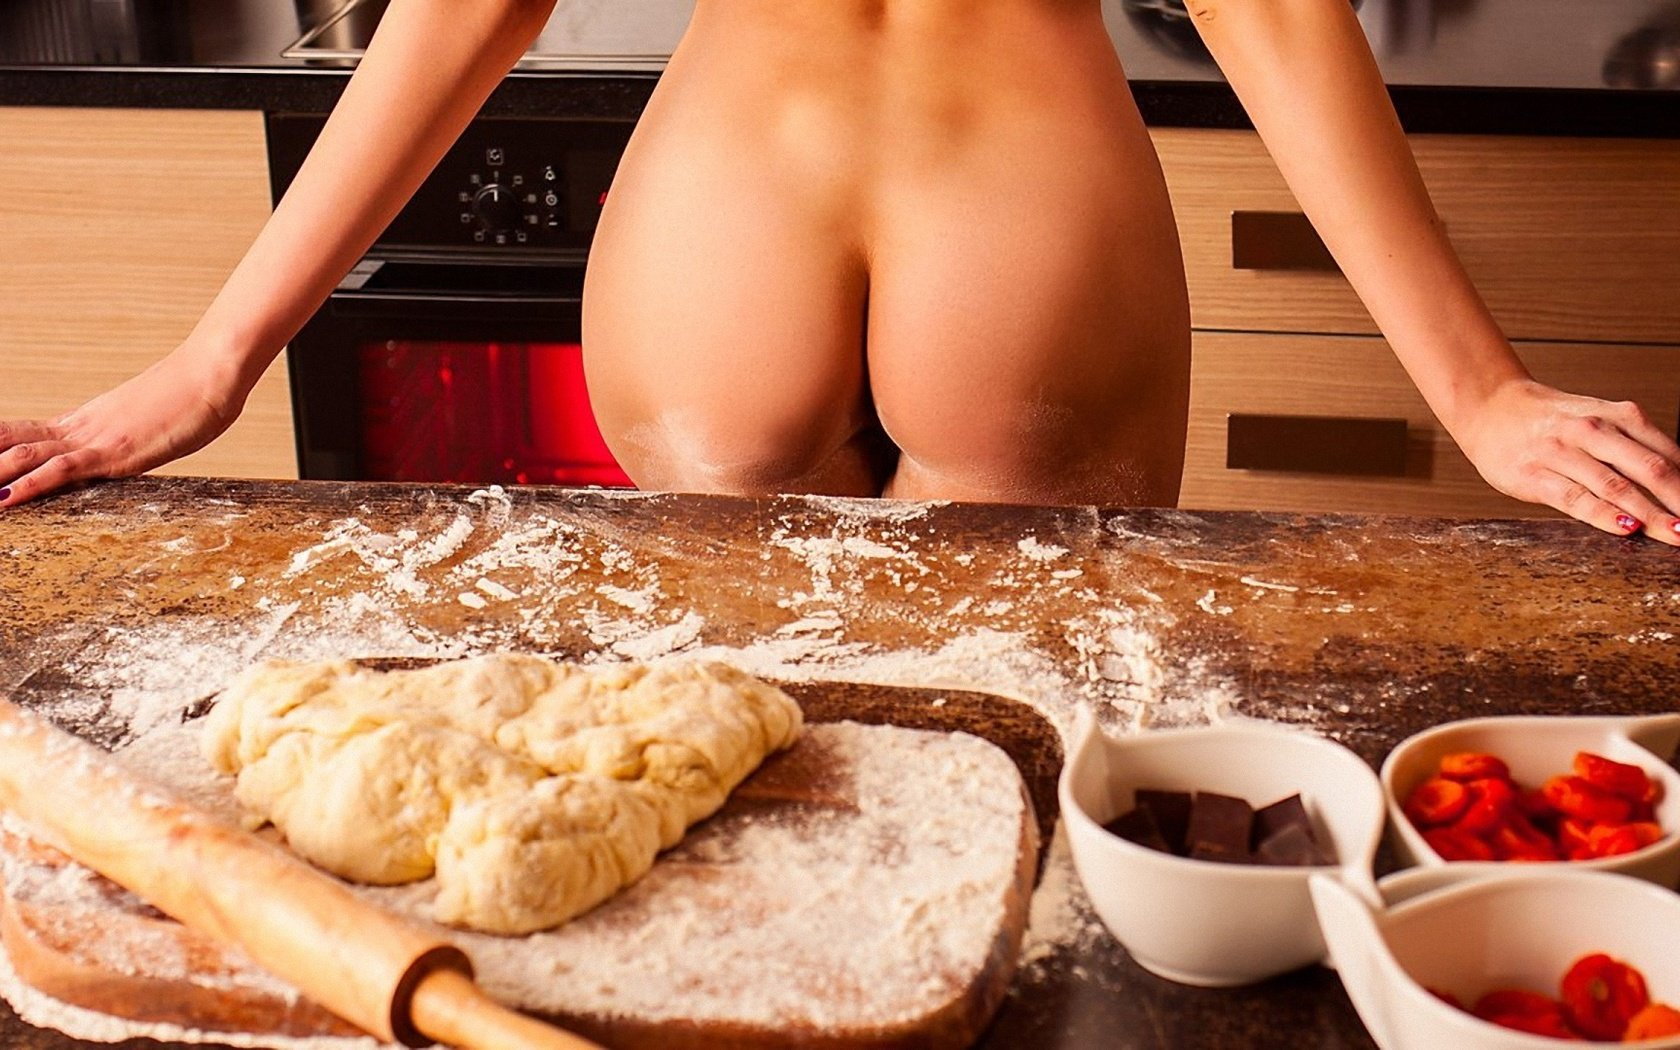 sexy-girl-cooking-ass-ejaculating-sex-toy